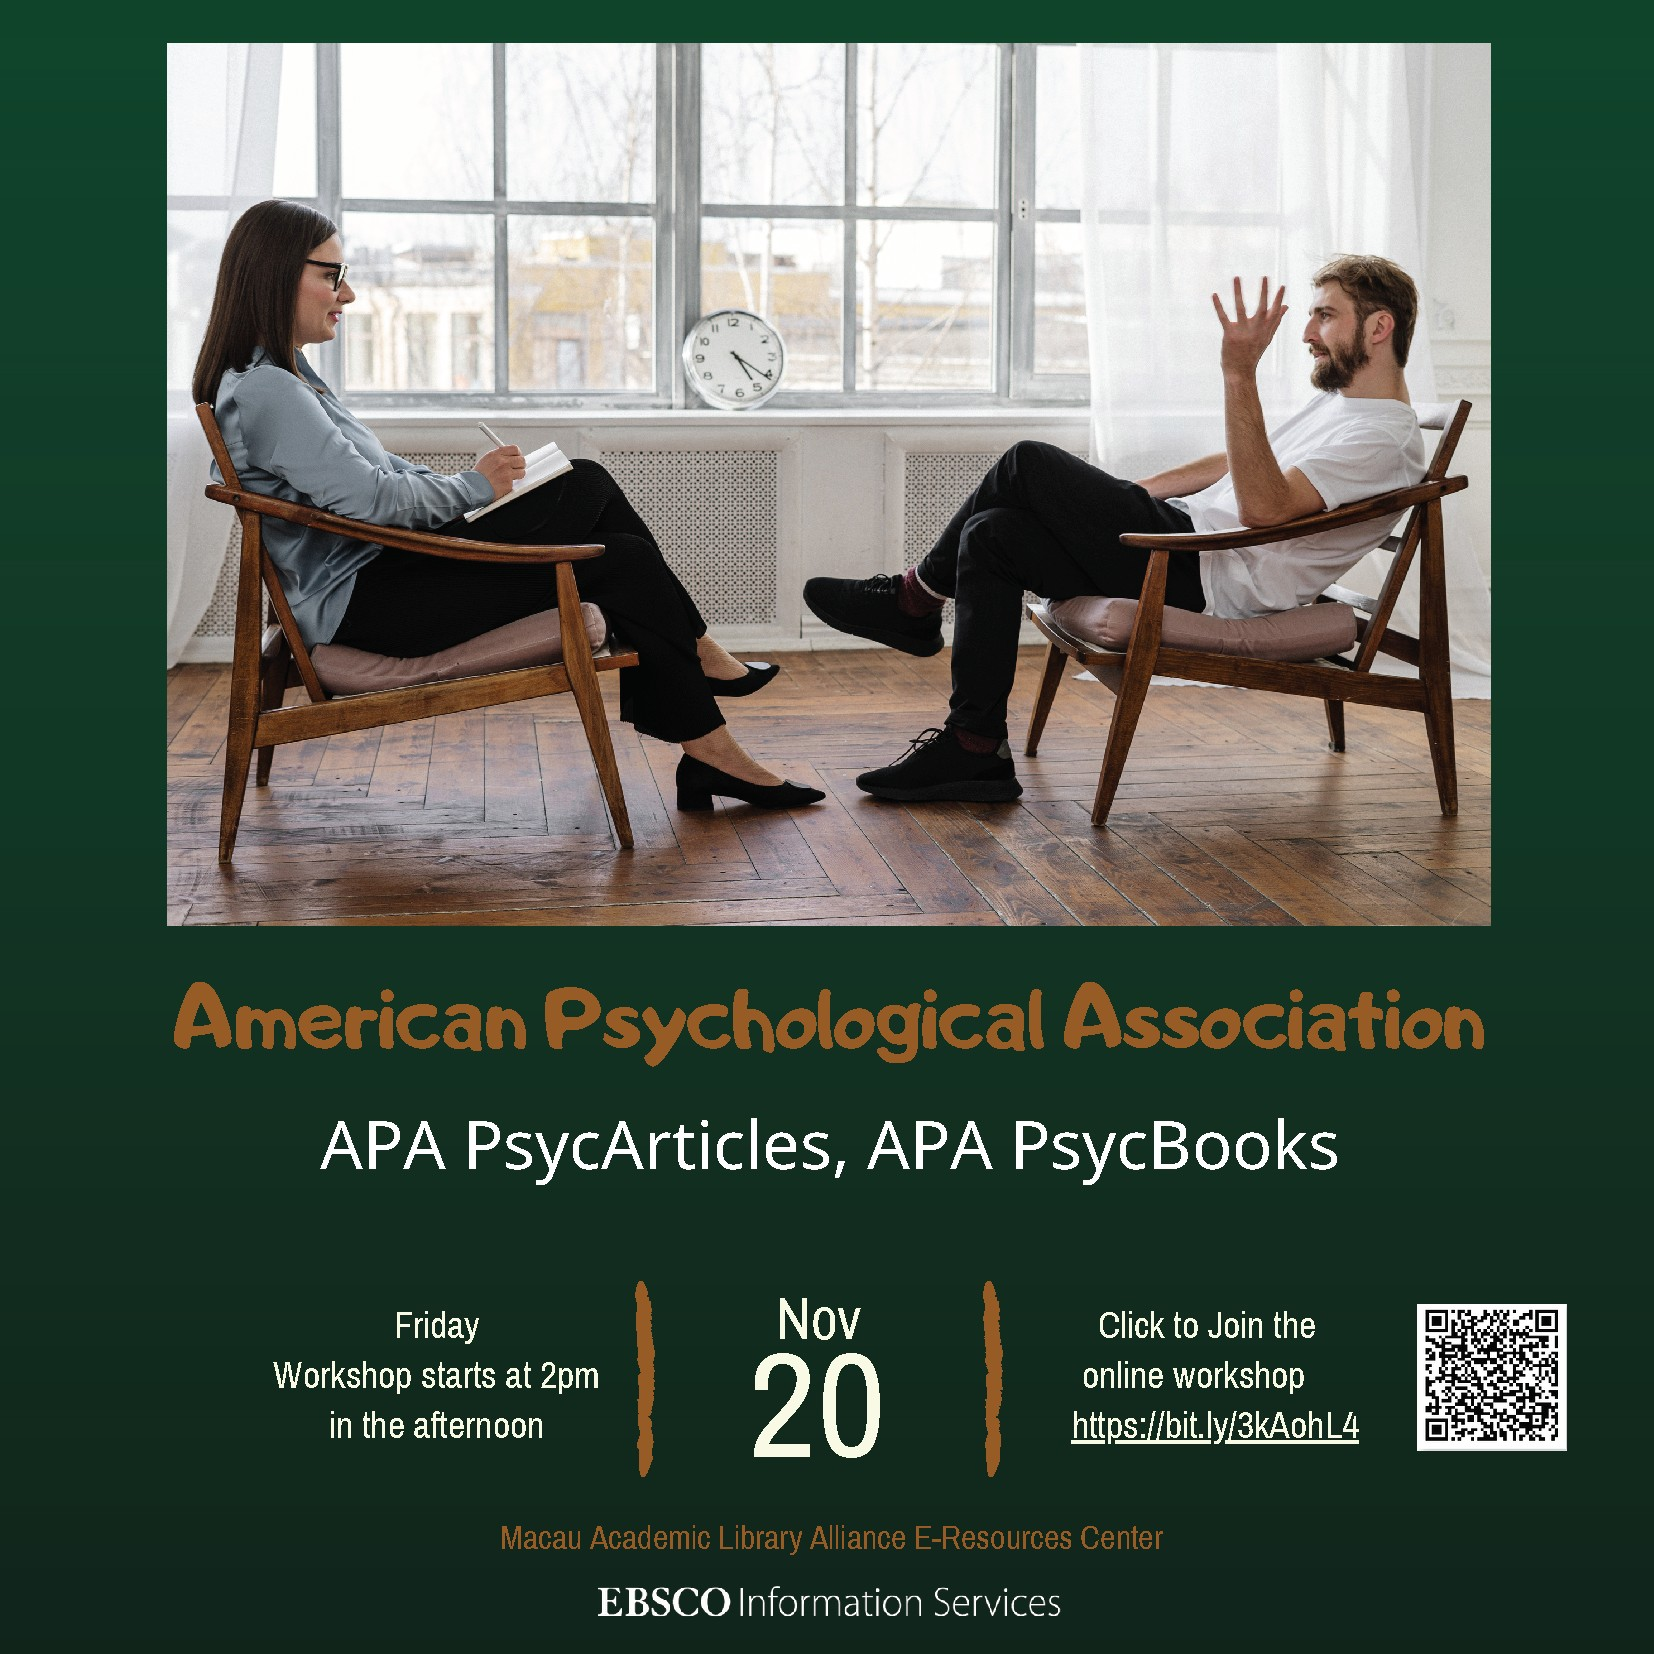 EBSCO Databases Online Training Sessions - APA PsycArticles, APA PsycBooks (English Session)